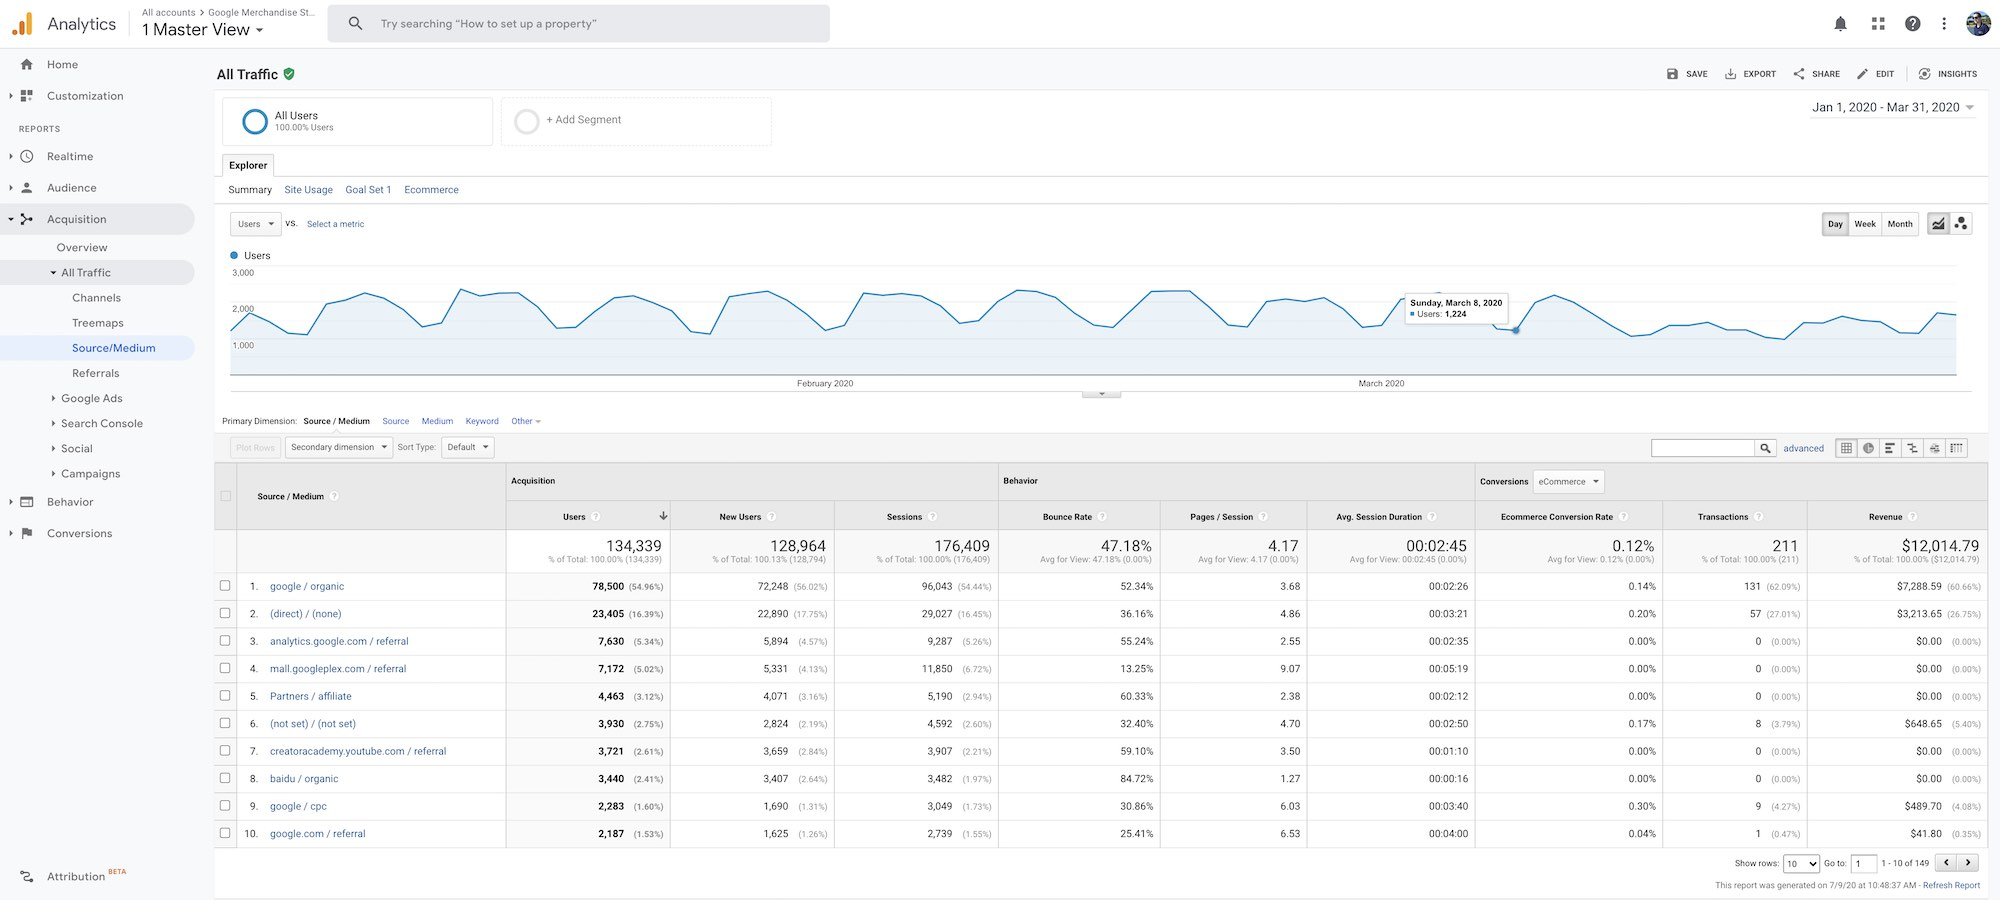 Google Analytics - Source Medium